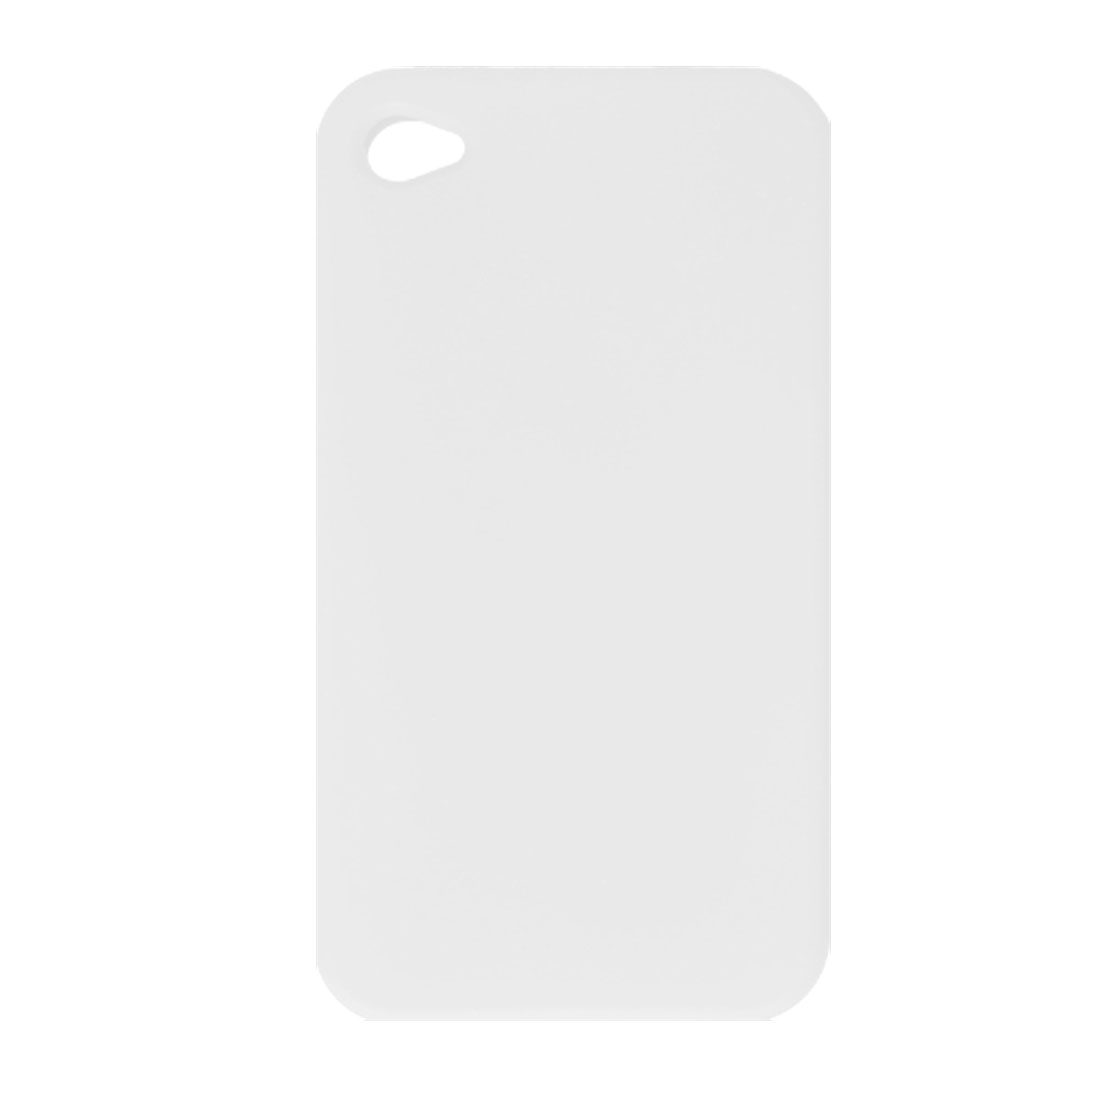 Clear White Silicone Skin Cover Case for Apple iPhone 4 4G